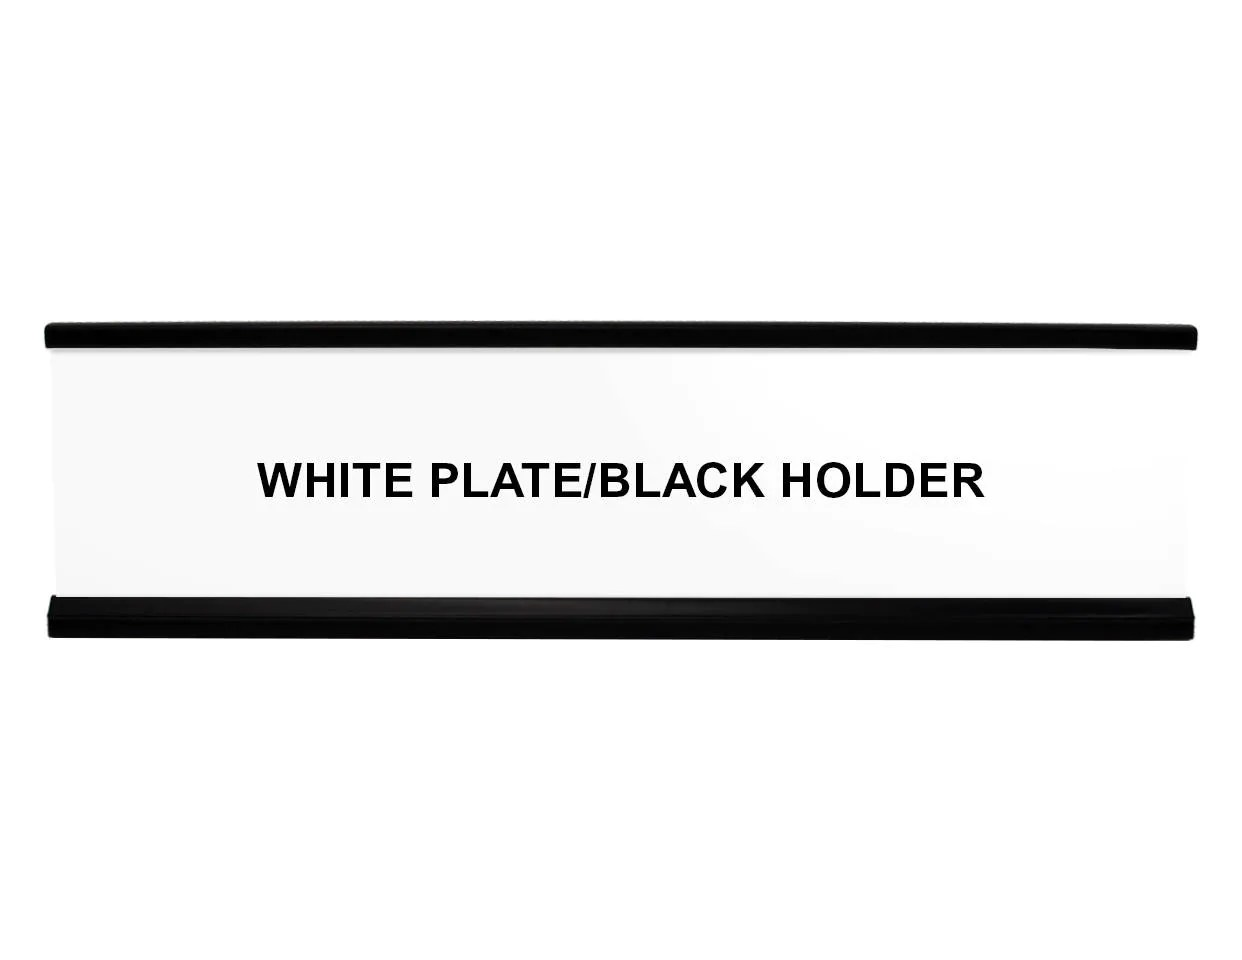 Custom Name Desk Plate  Personalized Name Plate  Choose Your image 9